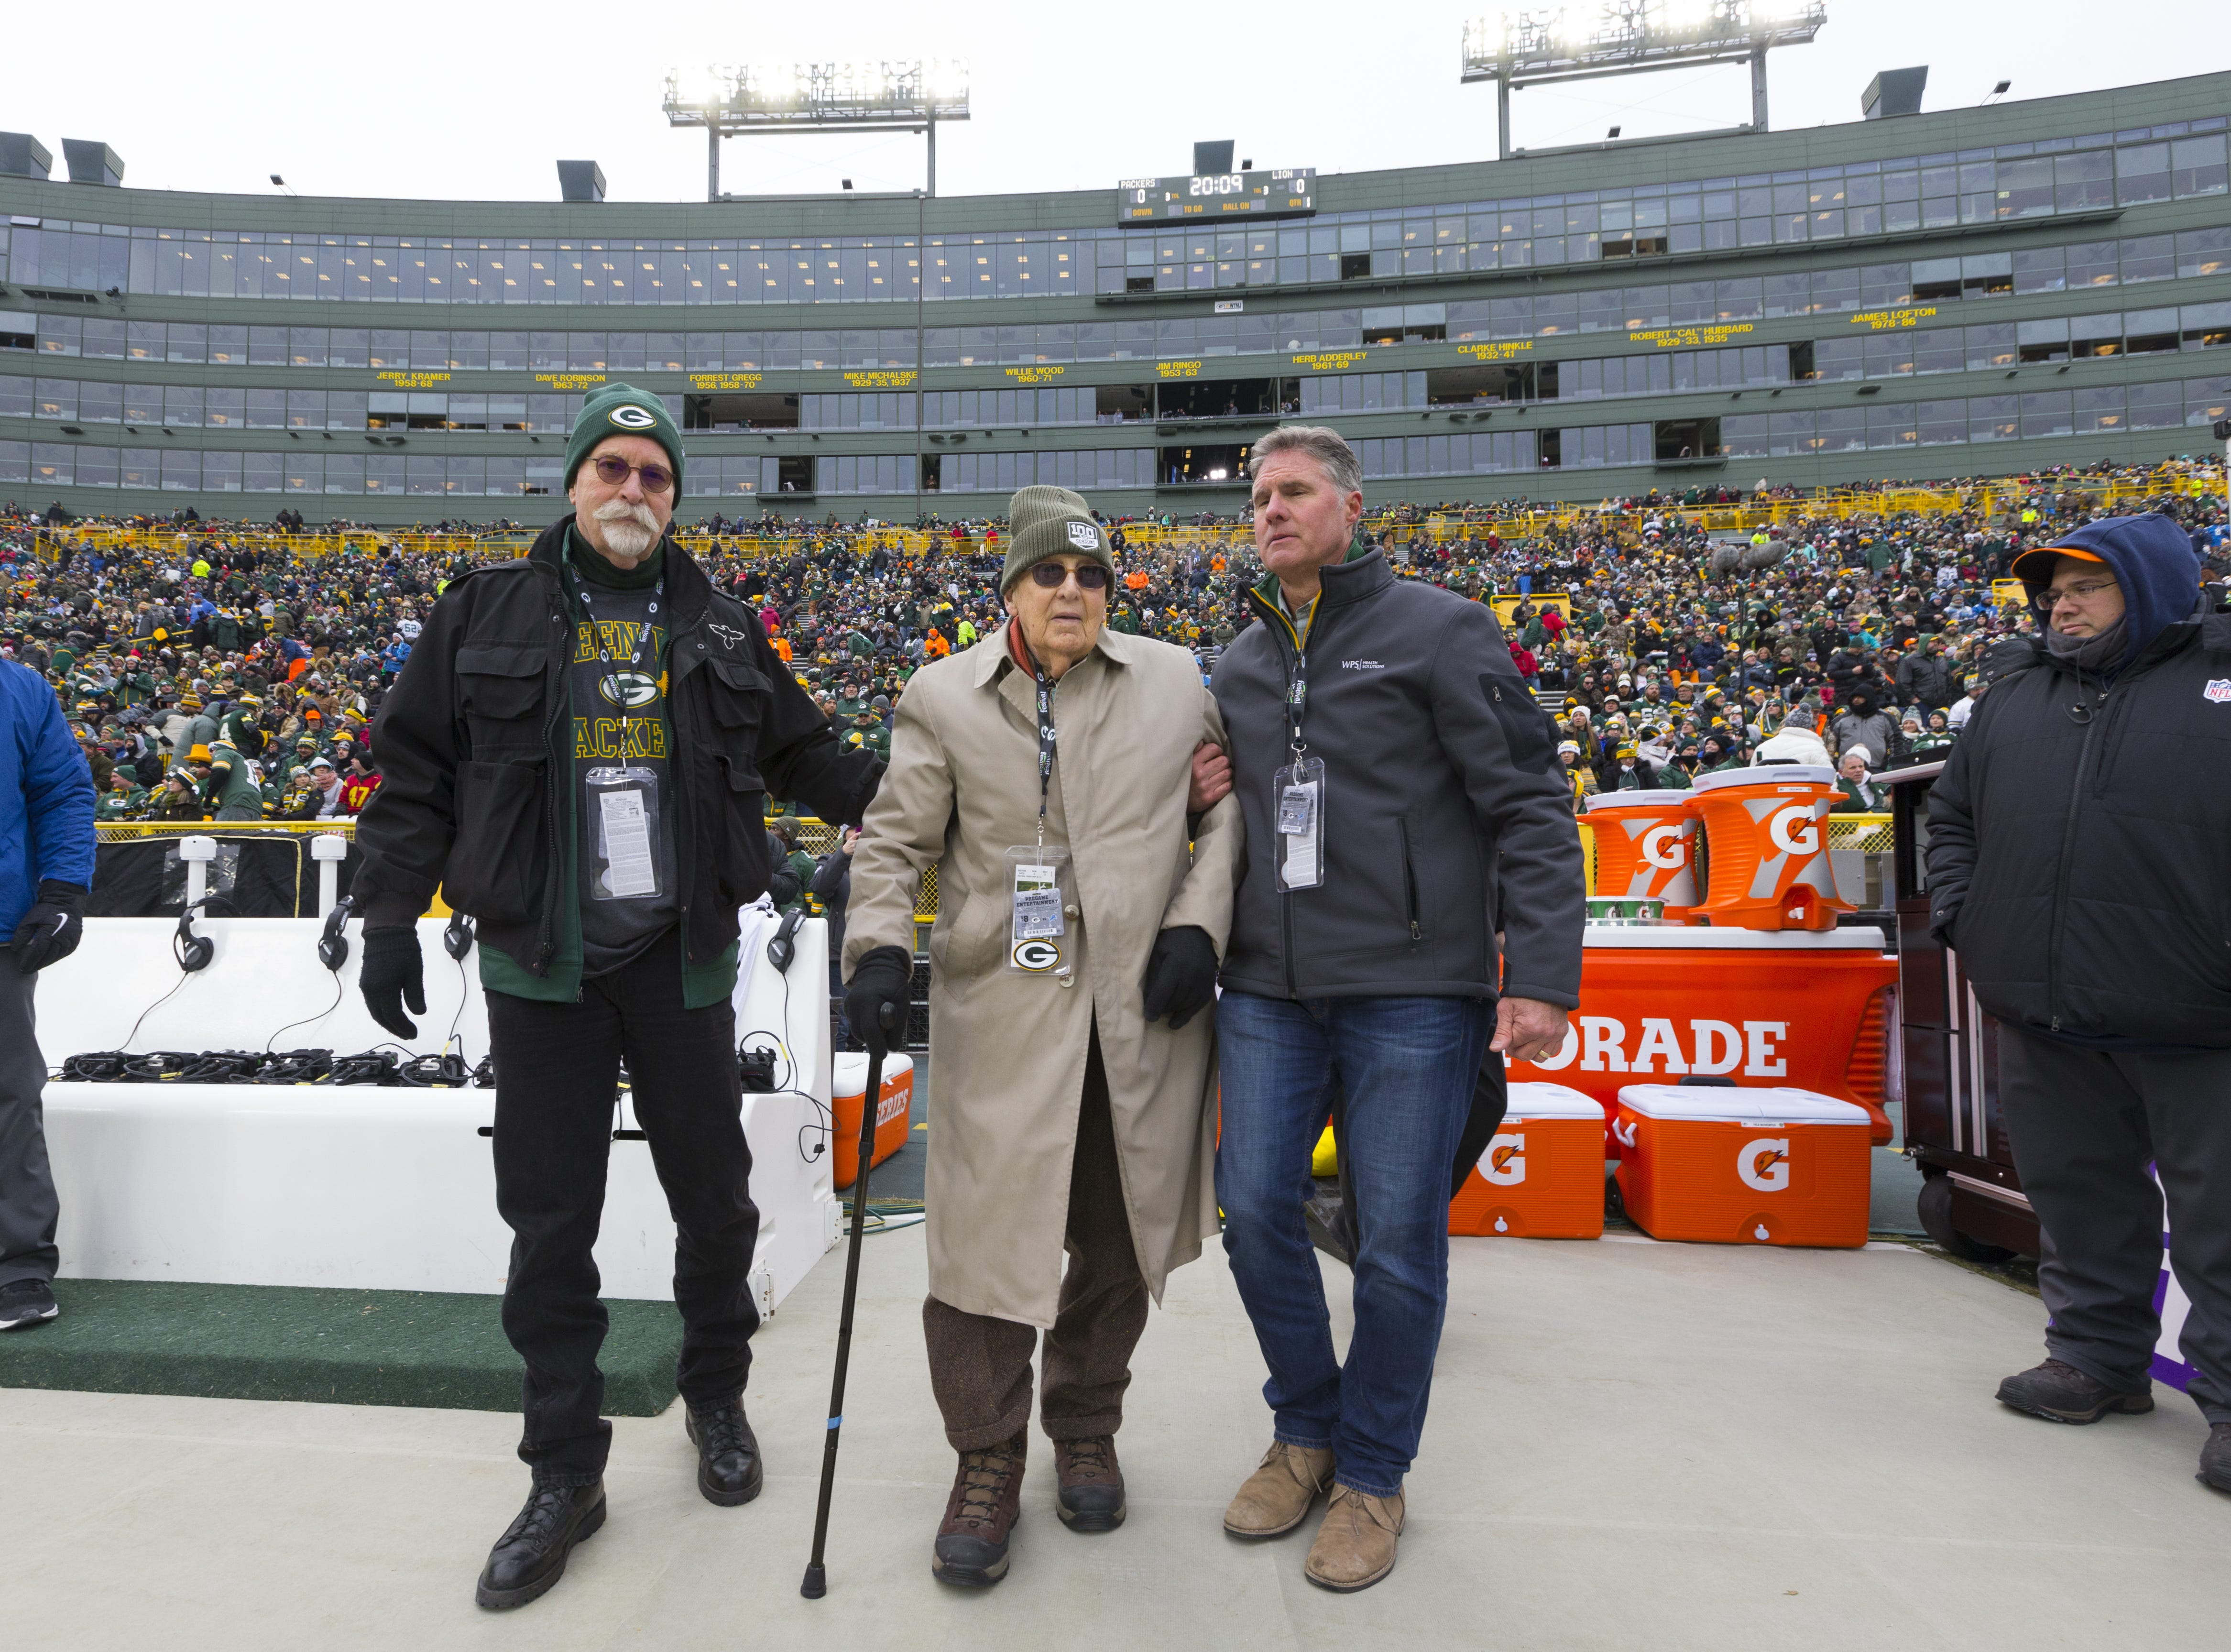 Eugene Nordby (center), who served as a military surgeon during World War II, is escorted to midfield to be honored before the Green Bay Packers game against the Detroit Lions Sunday, December 30, 2018 at Lambeau Field in Green Bay, Wis. Nordby is the same age as the Packers - 100 years. Nordby graduated from Luther College in 1939 and earned his medical degree at UW-Madison in 1943. He served as a captain in the U.S. Army Medical Corps, 1944-46 and then practiced as an orthopedic surgeon until 1981. On the left is Nordby's son, Jon.  MARK HOFFMAN/MILWAUKEE JOURNAL SENTINEL